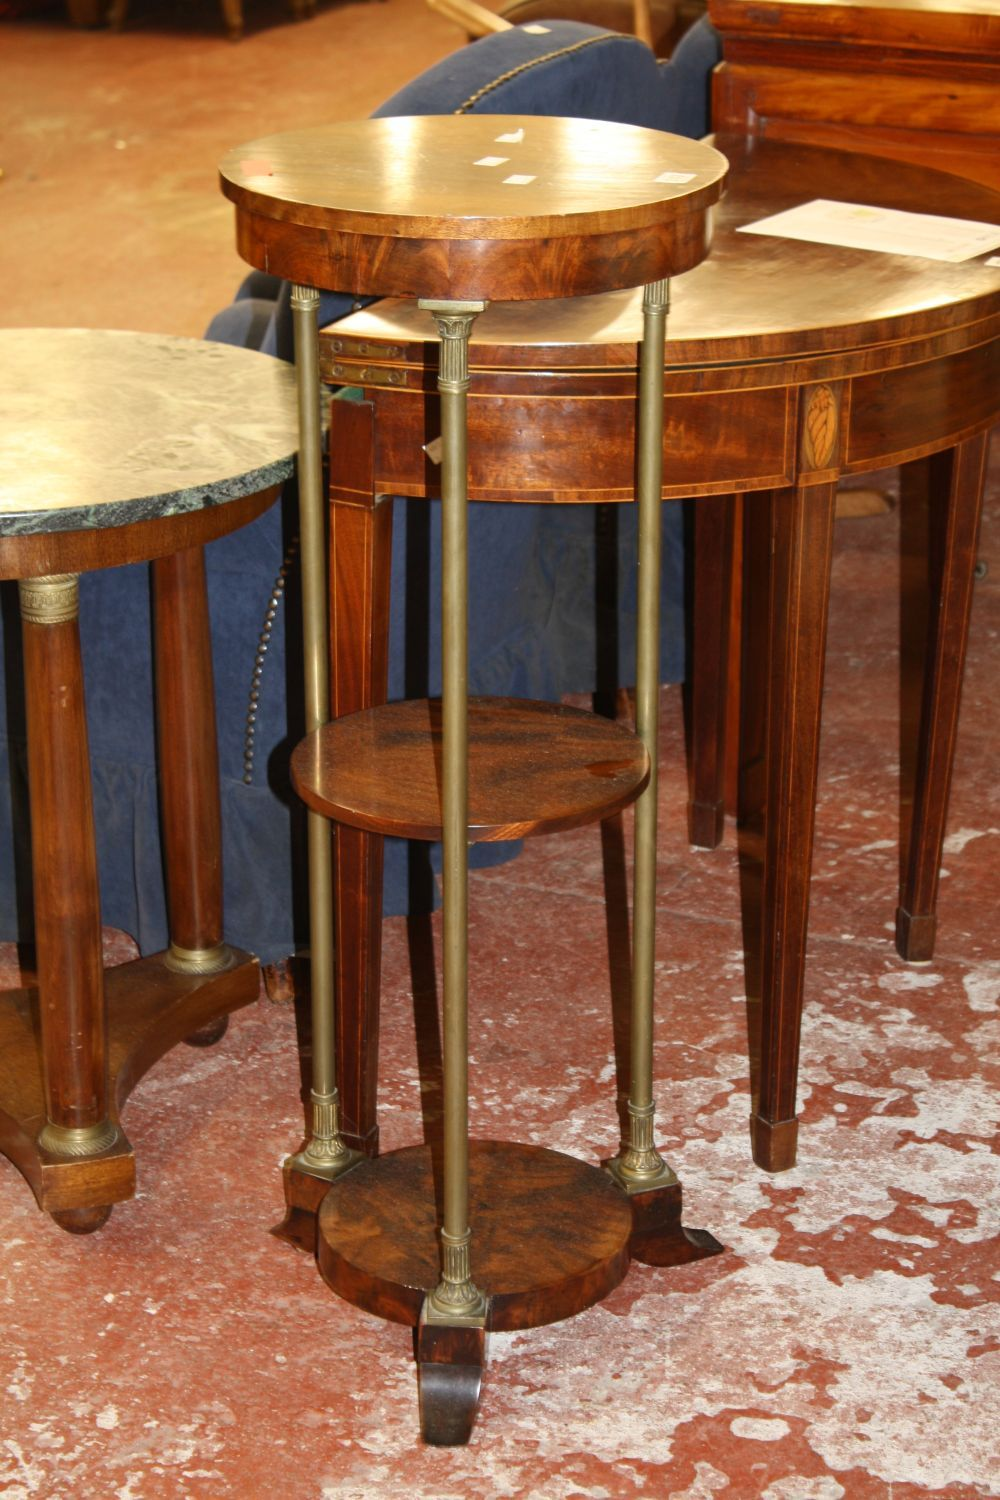 A French occasional table with three tiers